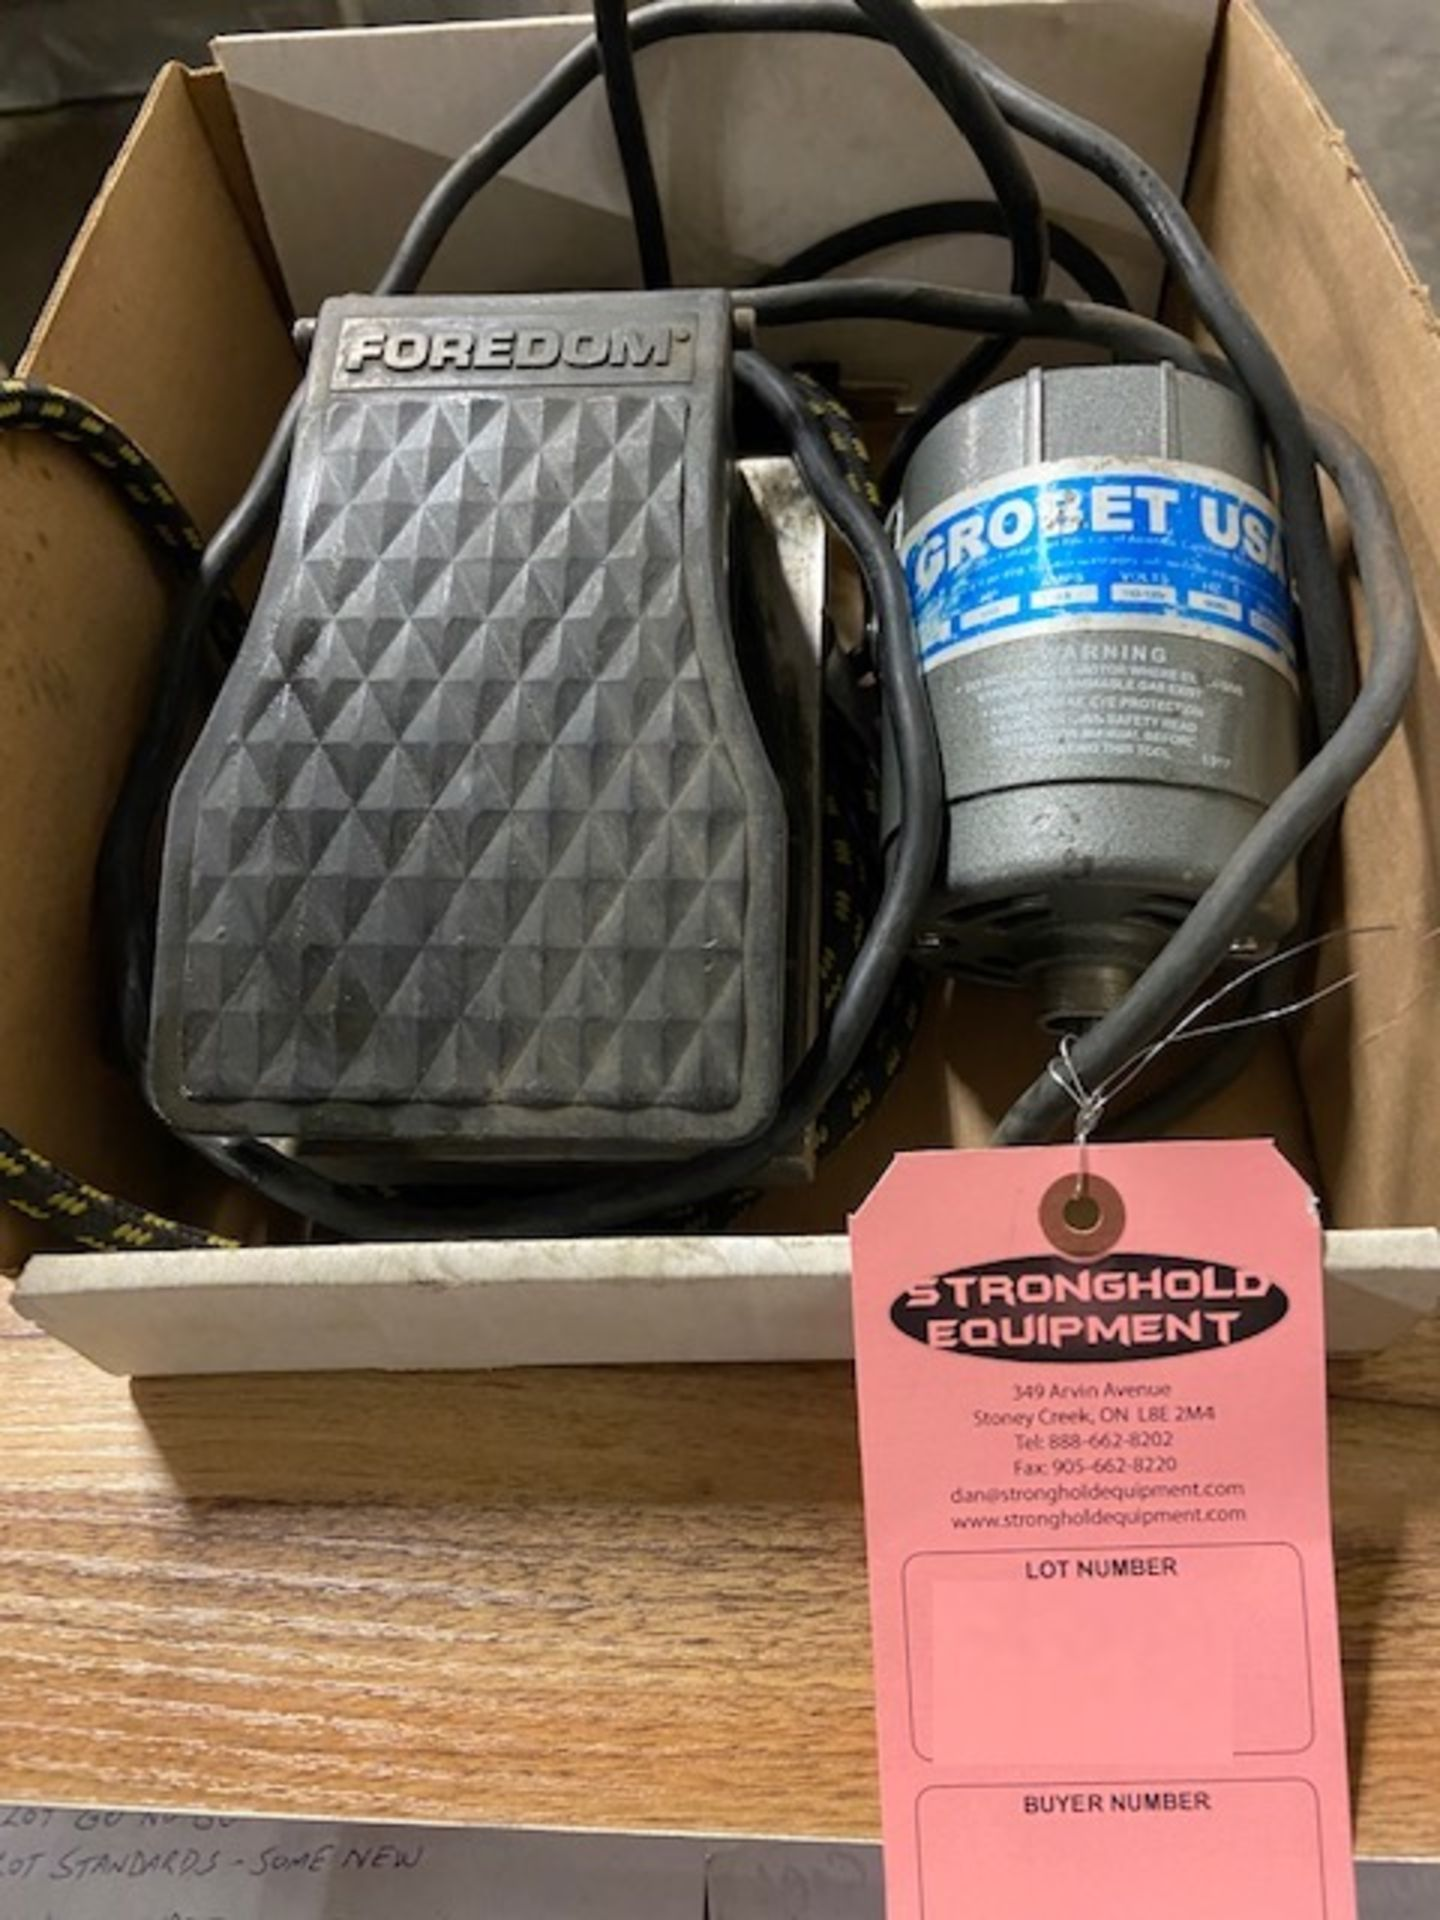 Grobet USA diprofil Power Unit with Foredom Foot Control Unit 110V